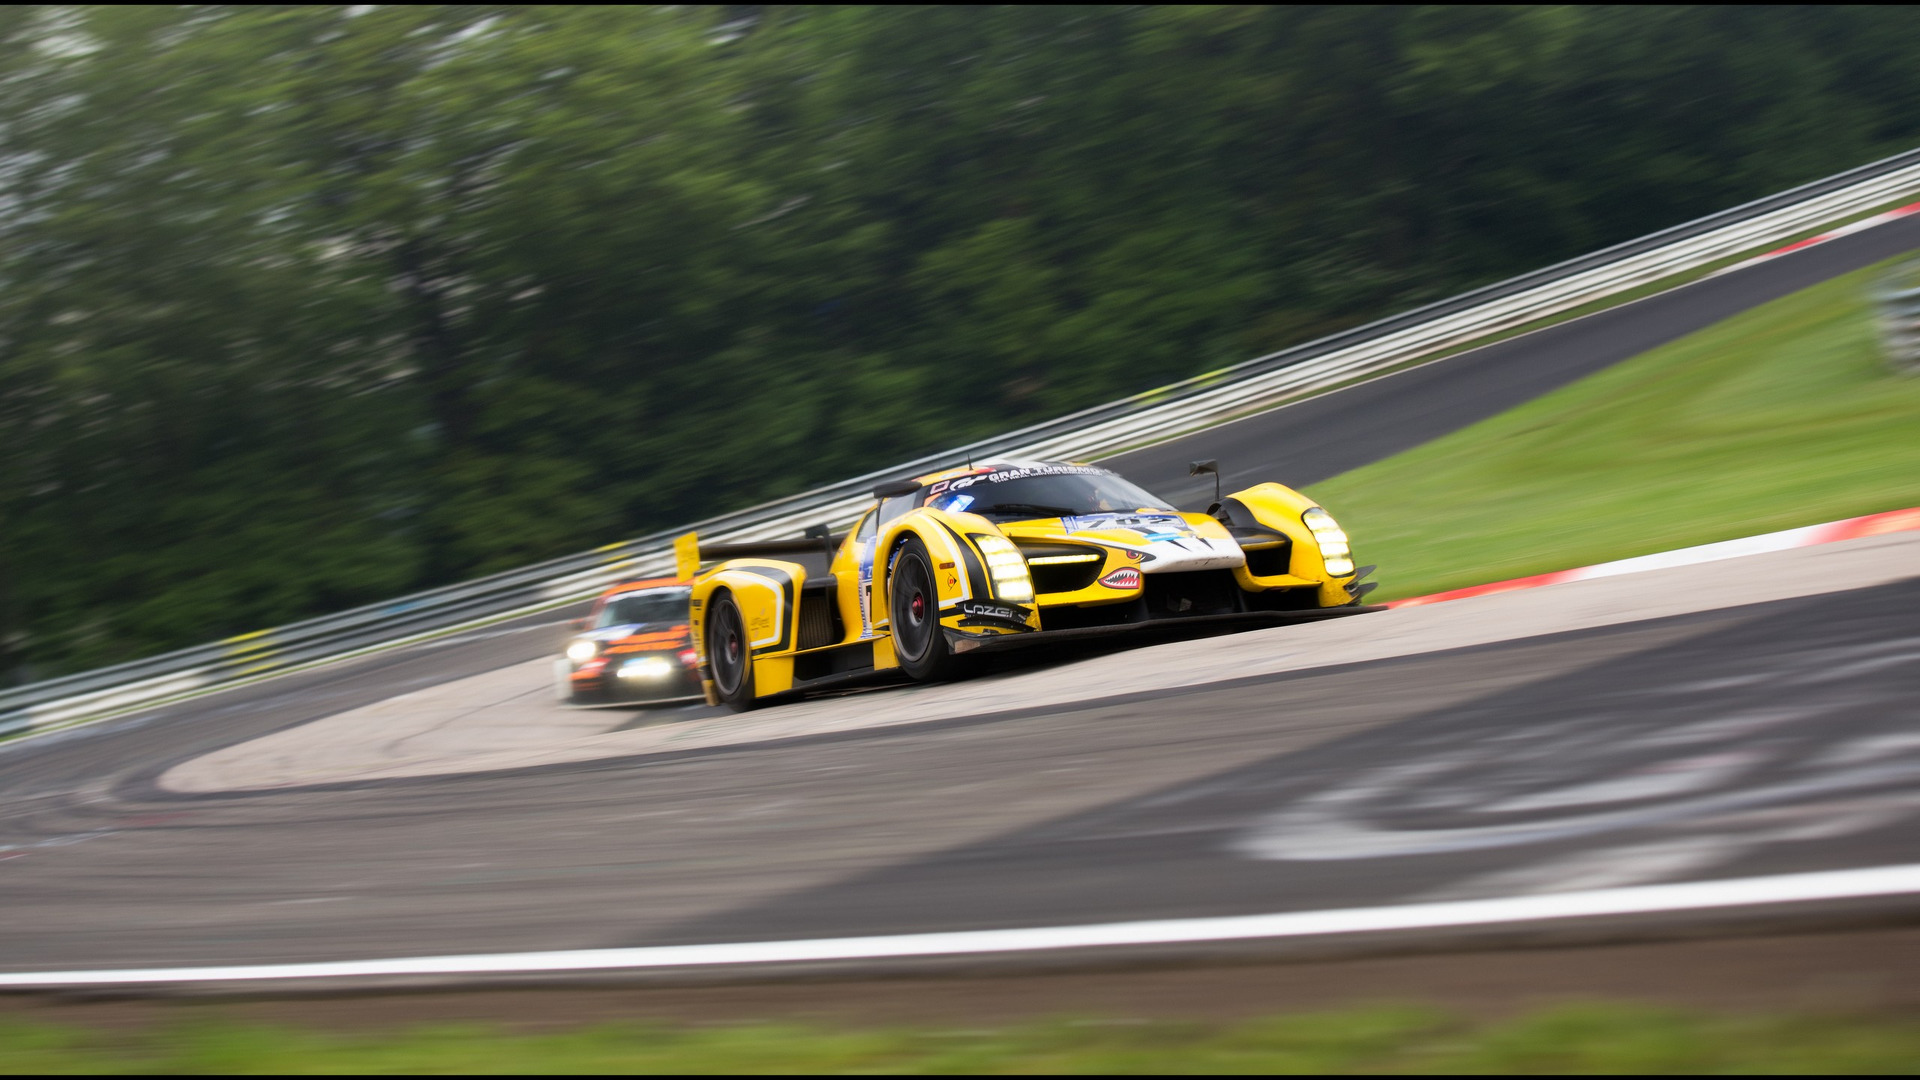 Glickenhaus Wants To Legitimize Nurburgring Lap Times With